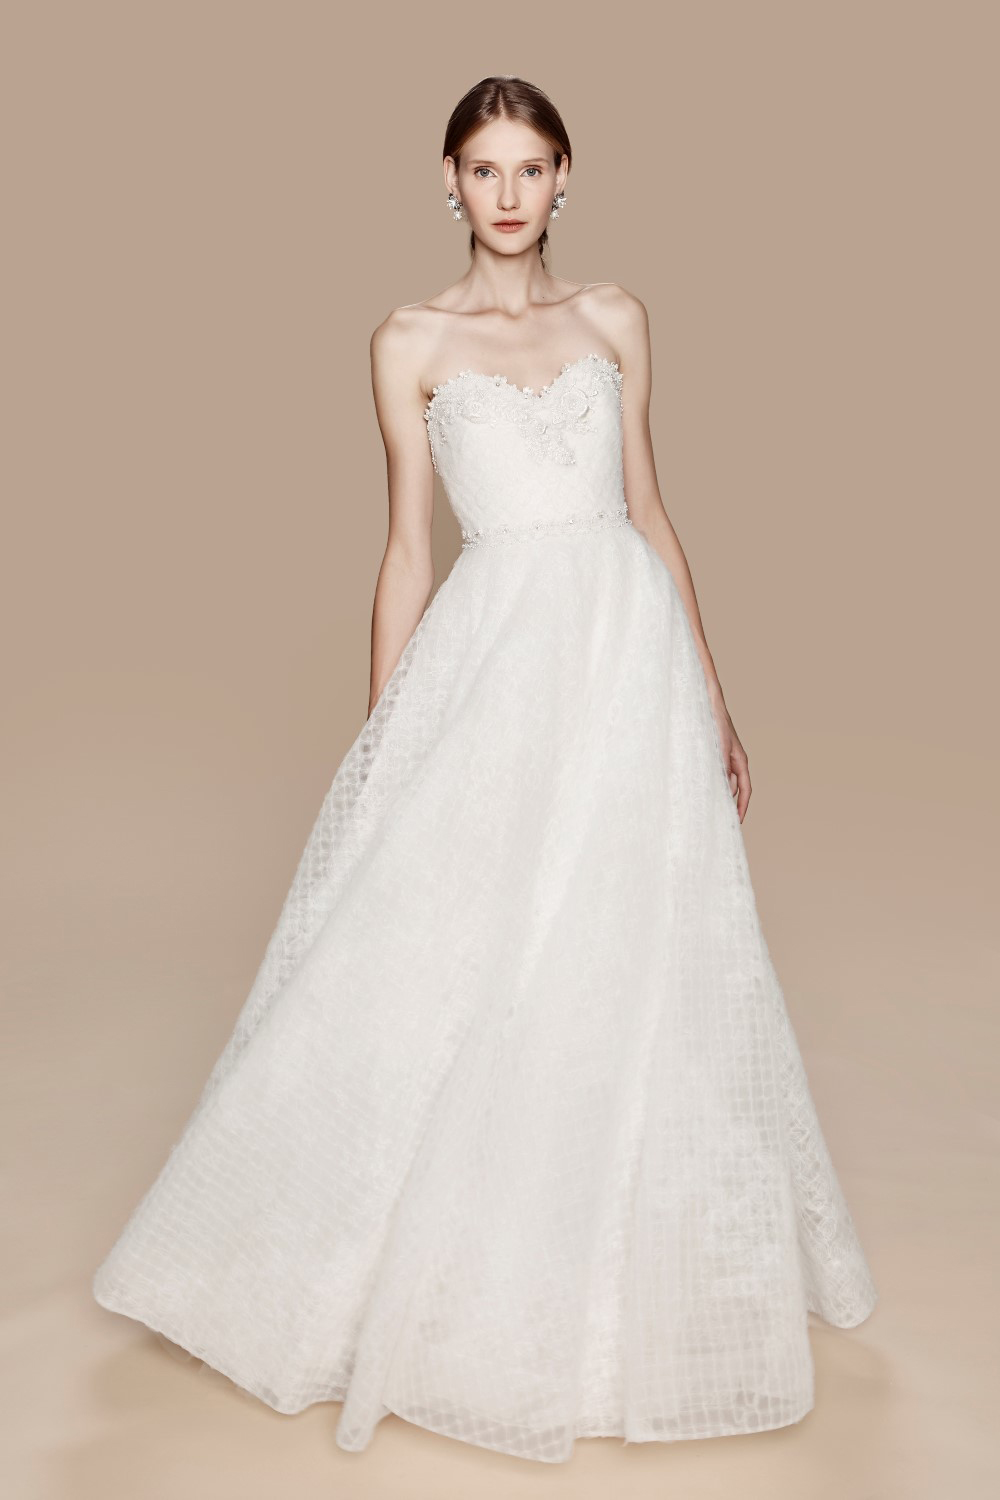 Marchesa Wedding Dresses Prices Of Marchesa Notte Fall 2017 Bridal Collection The Wedding